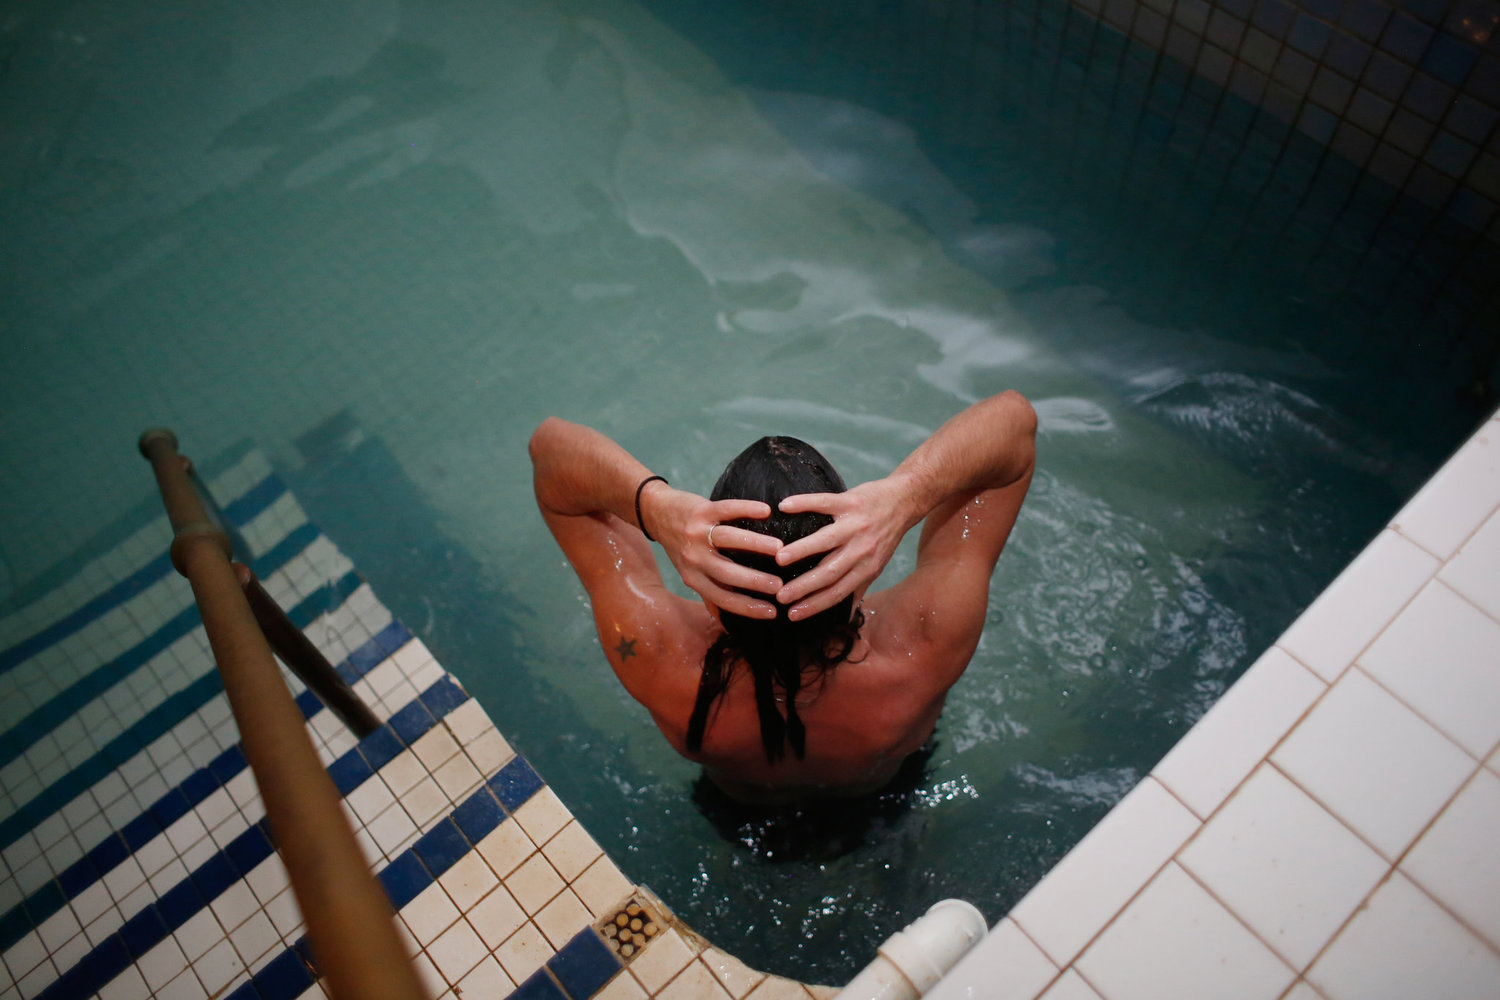 Jason Russell, 42, in the cold pool after sitting in the saunas.